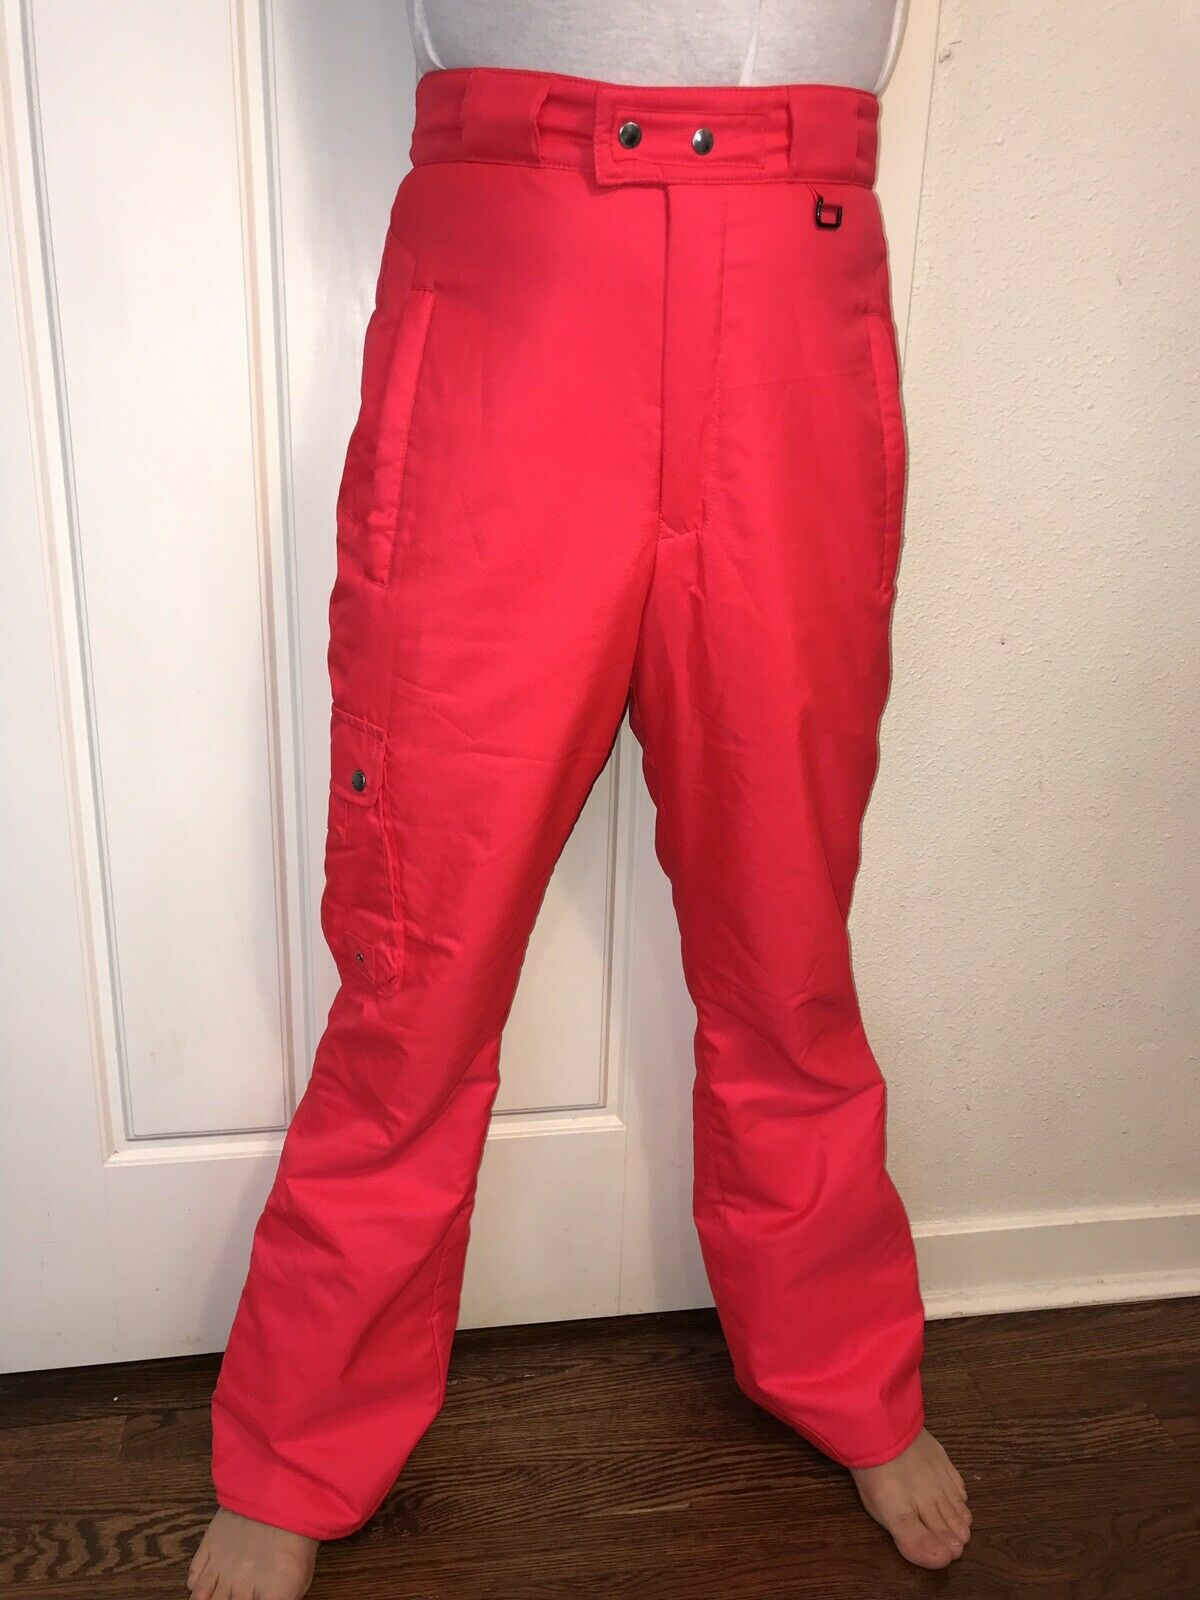 Vtg 80s 90s Infrared Neon OBERMEYER Terrain Ski  Pants Mens MEDIUM Snow bib suit  80% off